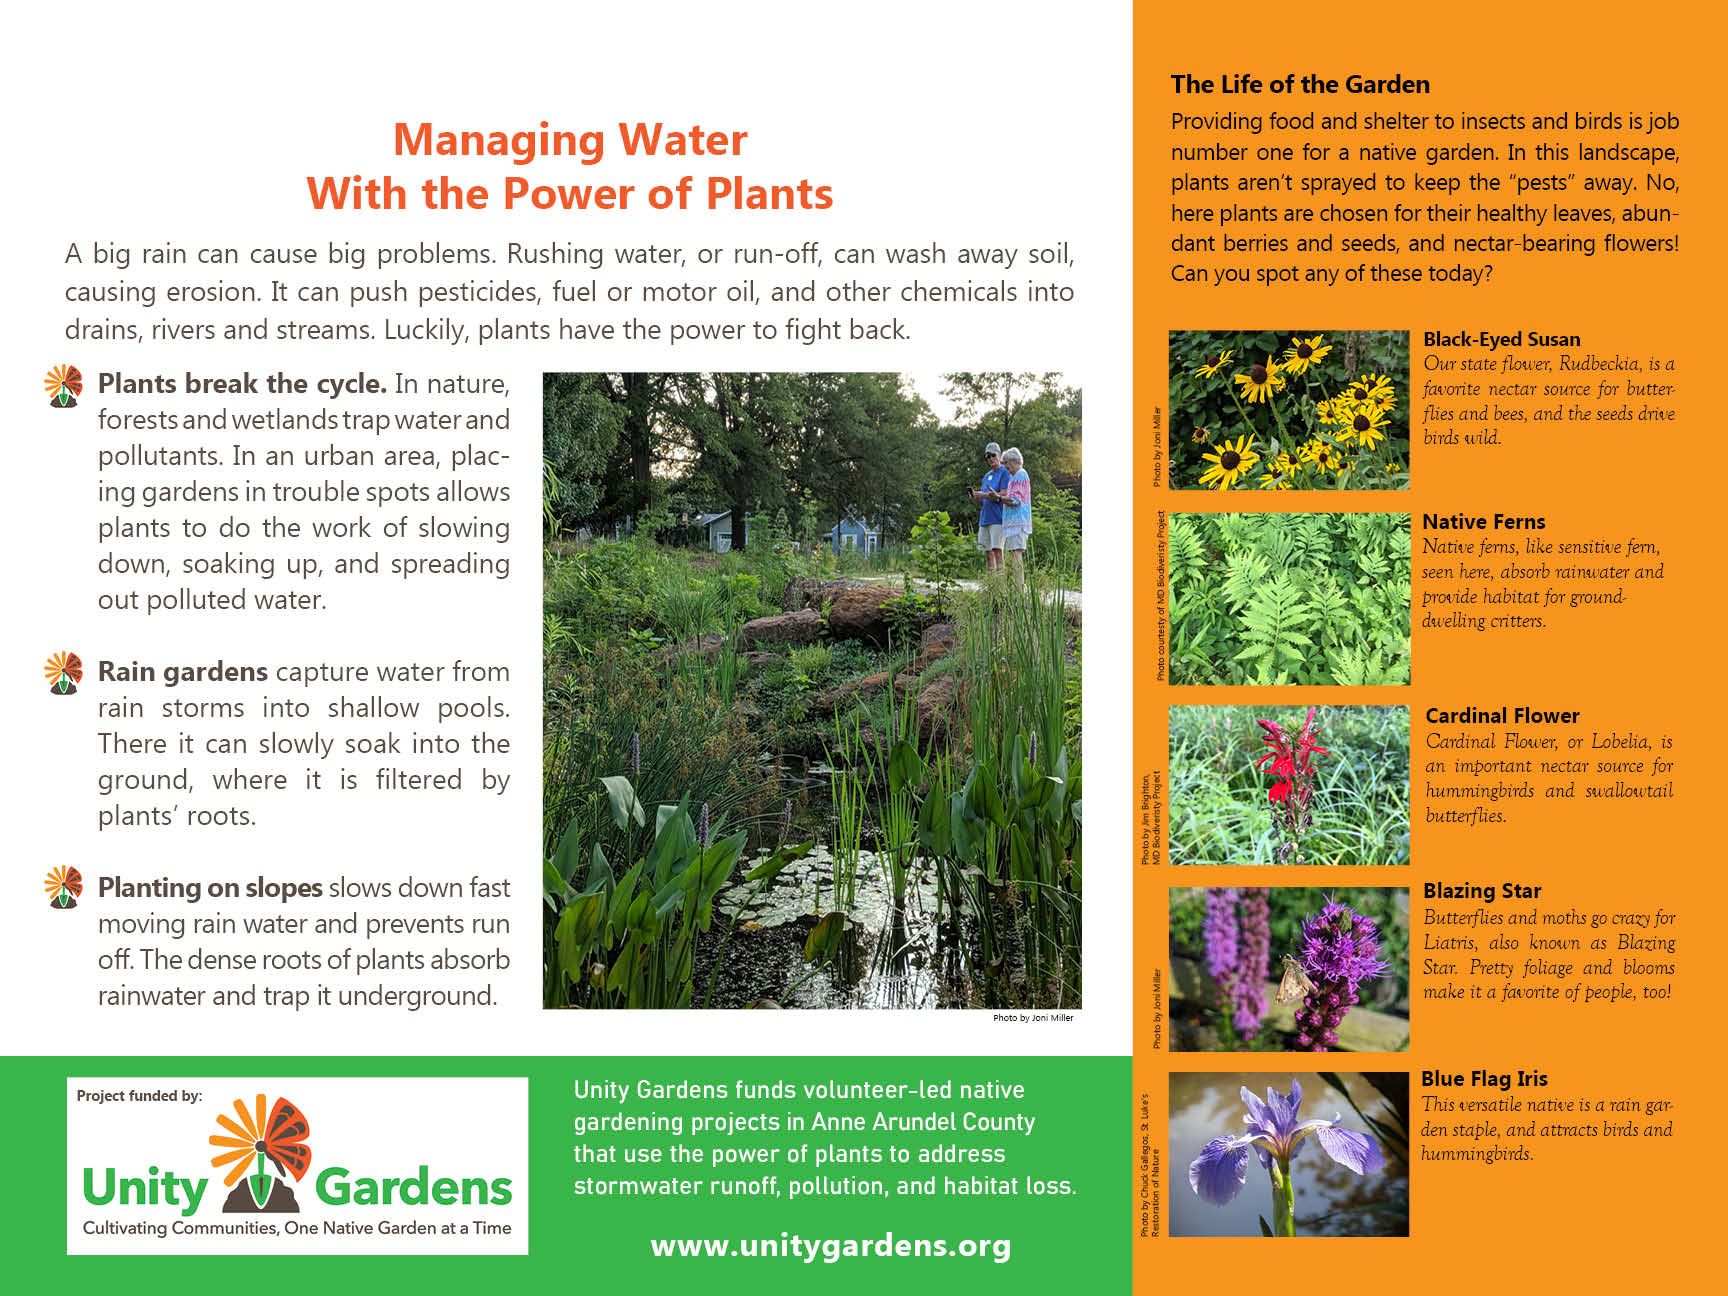 Managing Water with Native Plants